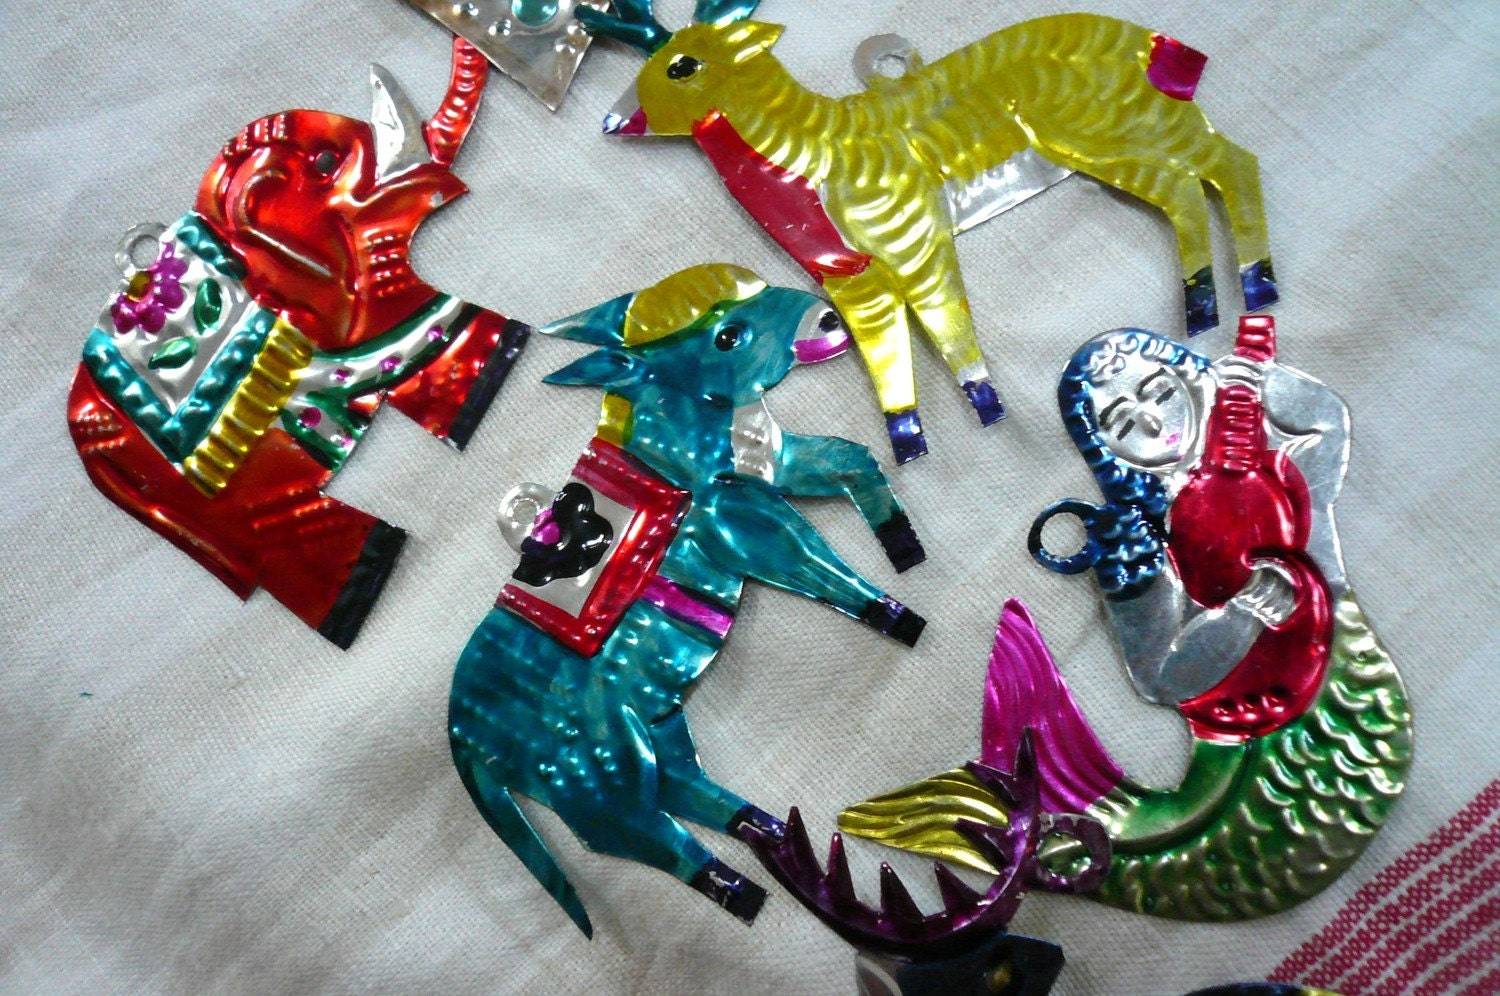 Vintage Tin Christmas Tree Ornaments : Vintage christmas ornaments mexican tin animals by